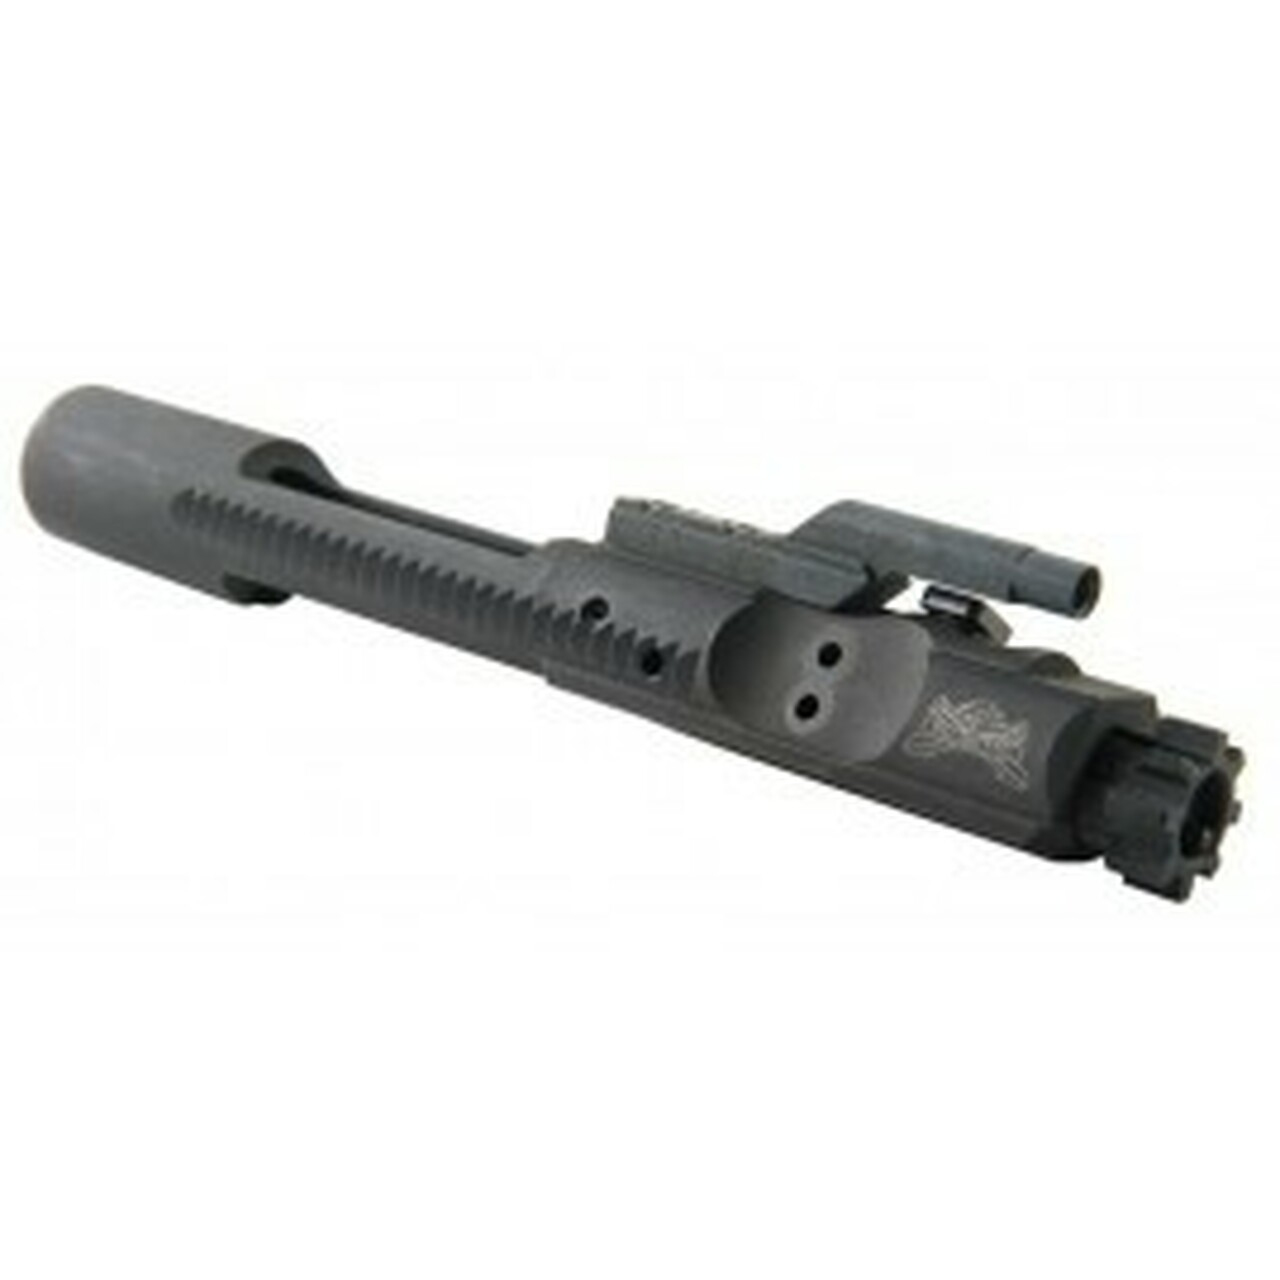 Bolt Carrier Group